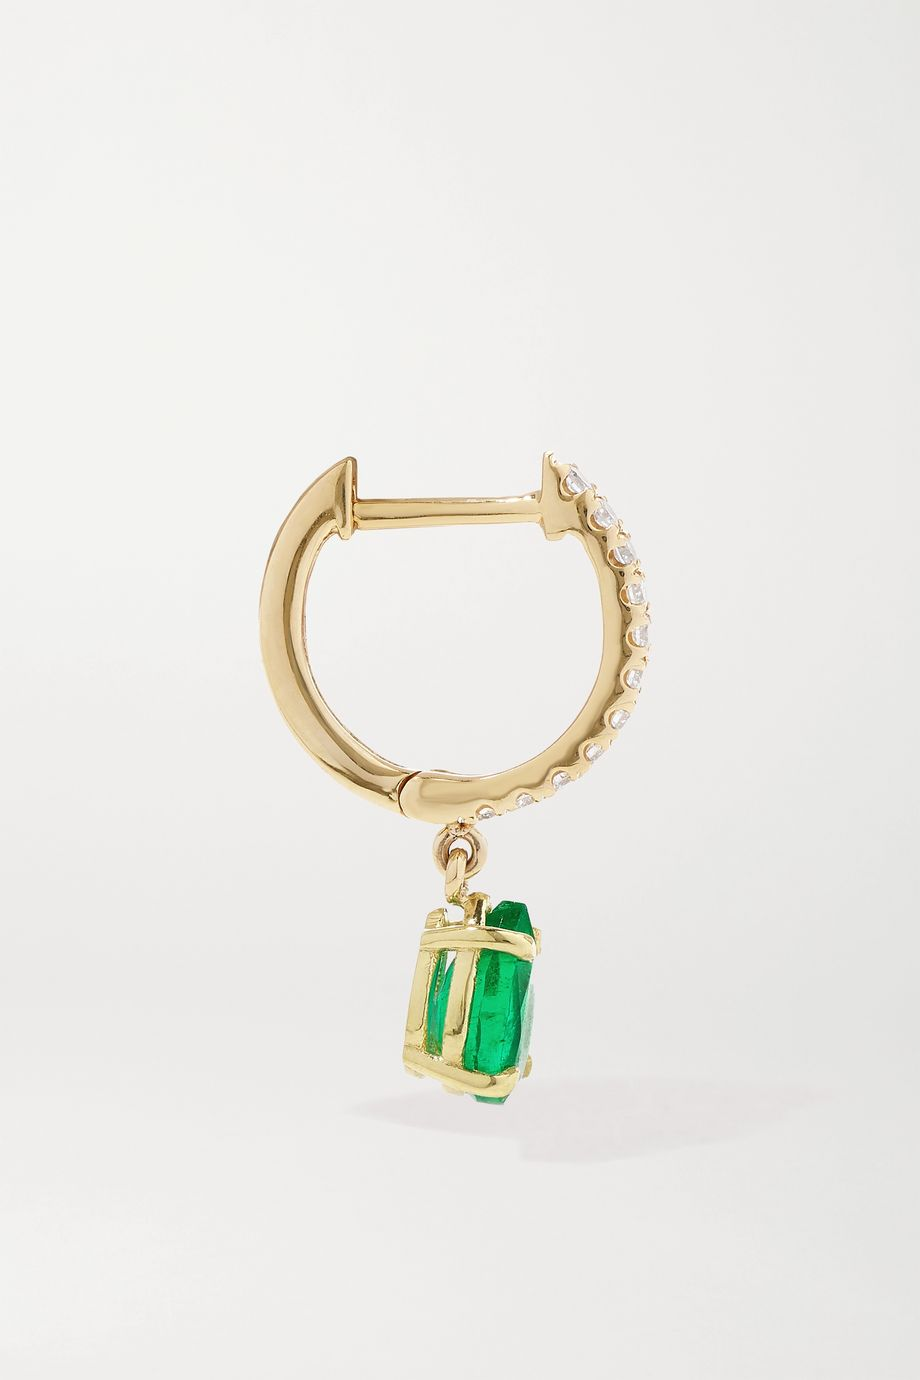 Anita Ko 18-karat gold, emerald and diamond hoop earring